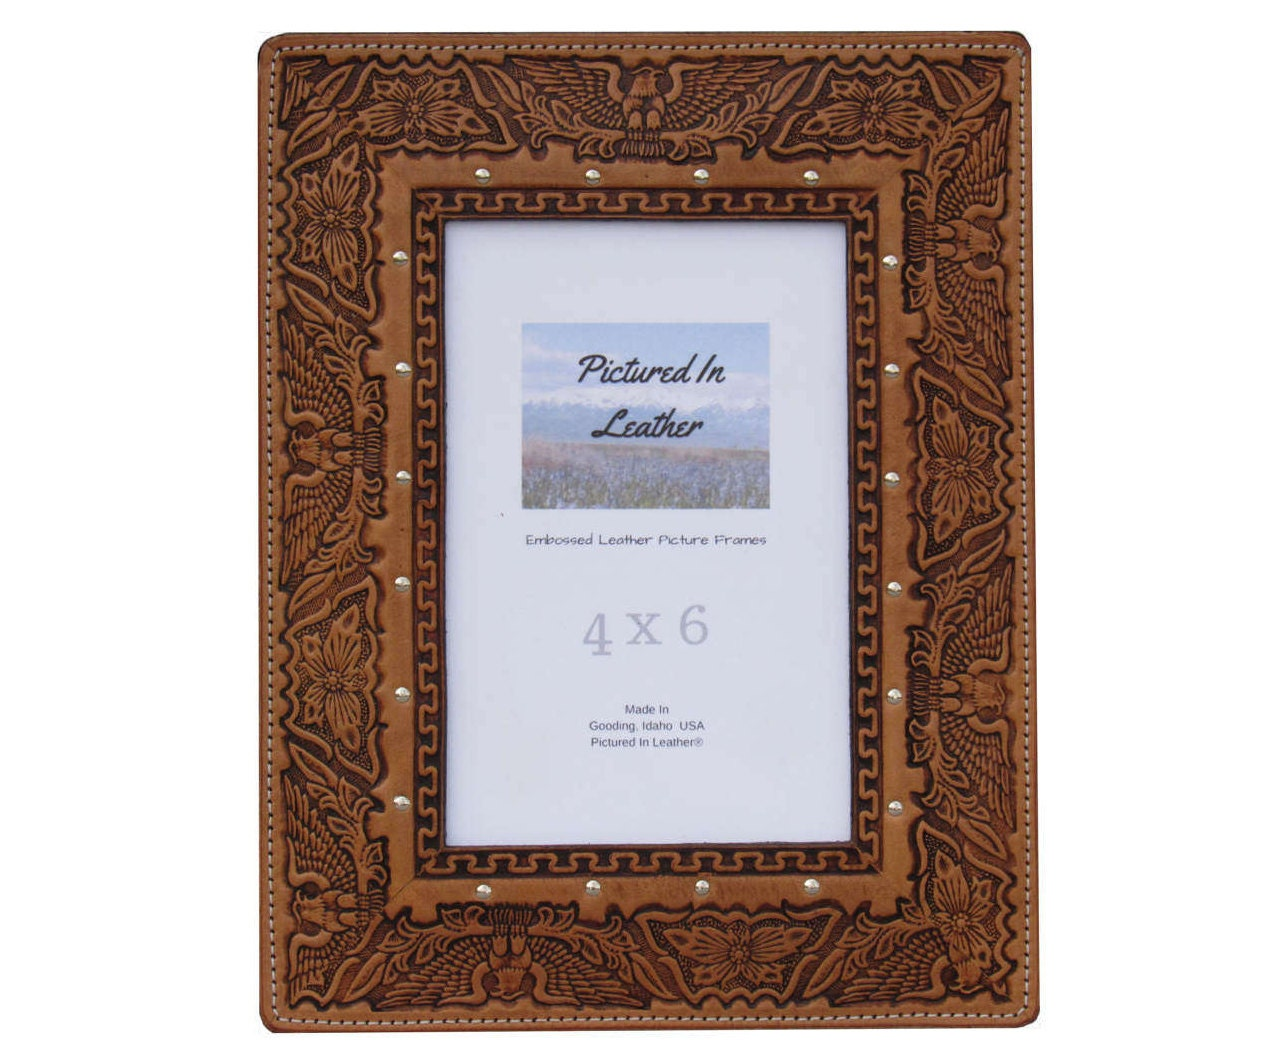 Patriotic 4x6 leather picture frame, patriotic eagle frame ...